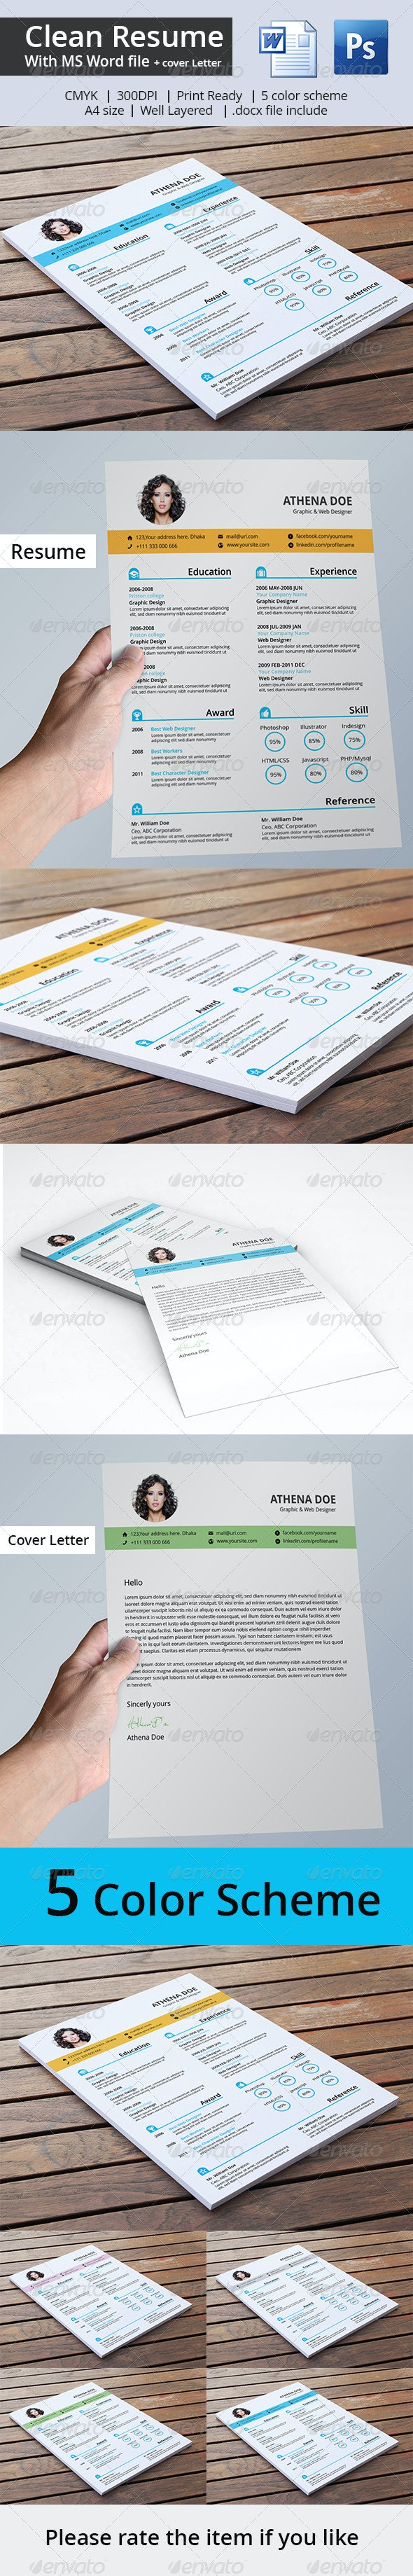 Clean Resume & Cover Letter With MS Word - Resumes Stationery